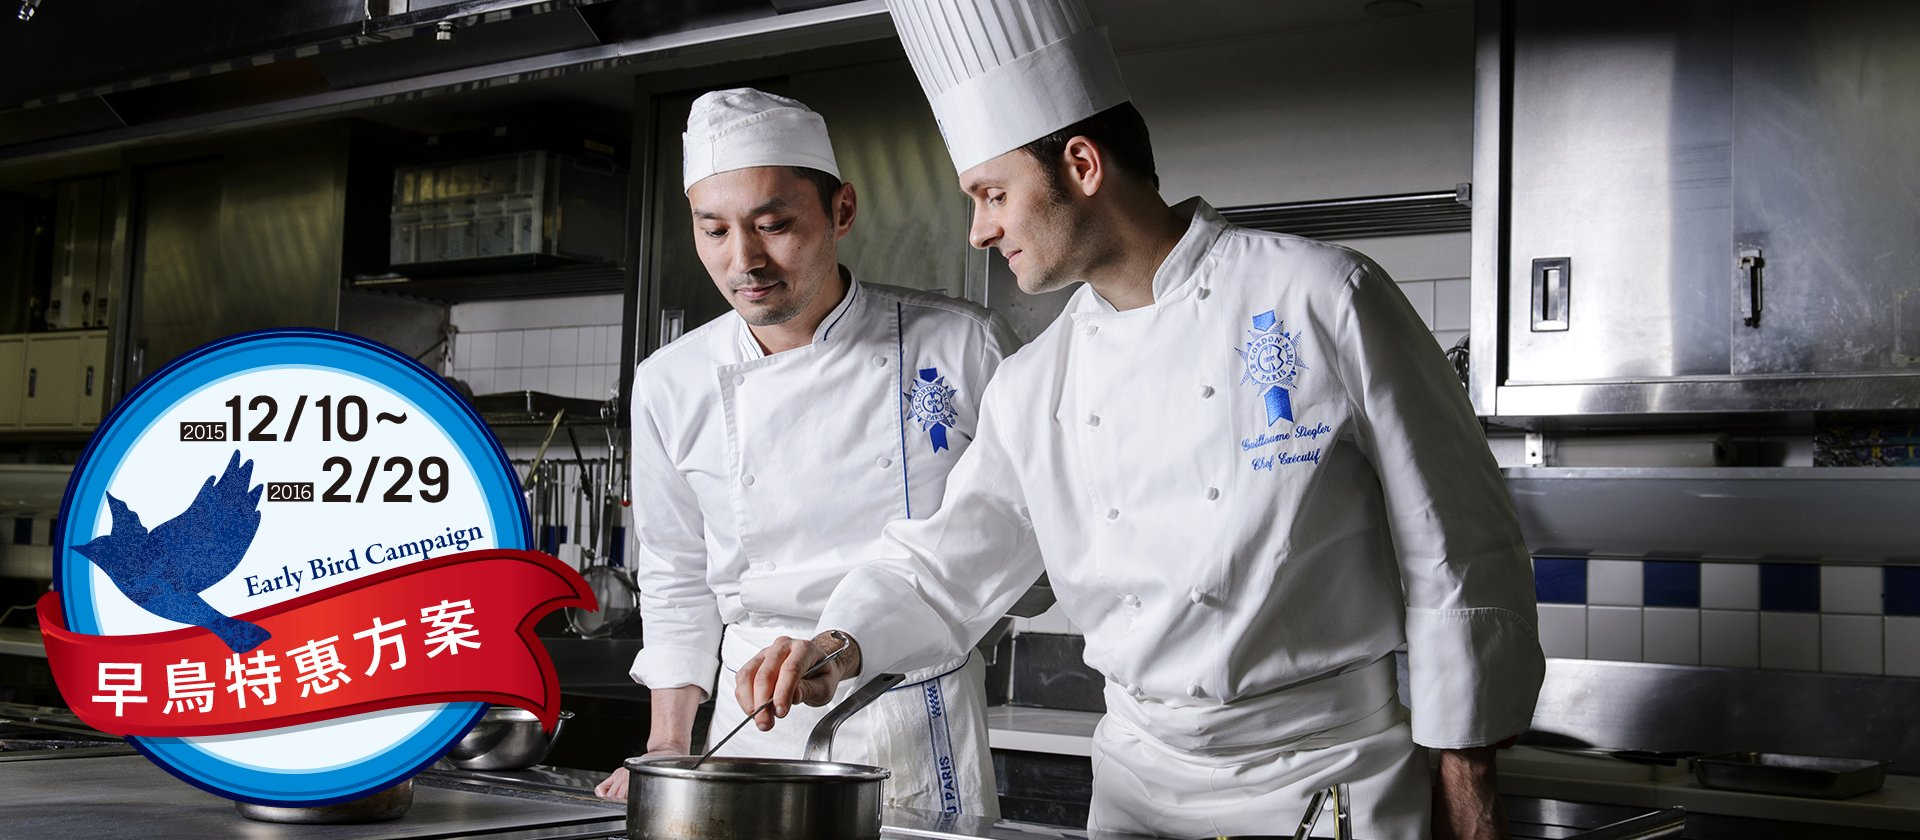 Le Cordon Bleu Japan EARLY BIRD CAMPAIGN